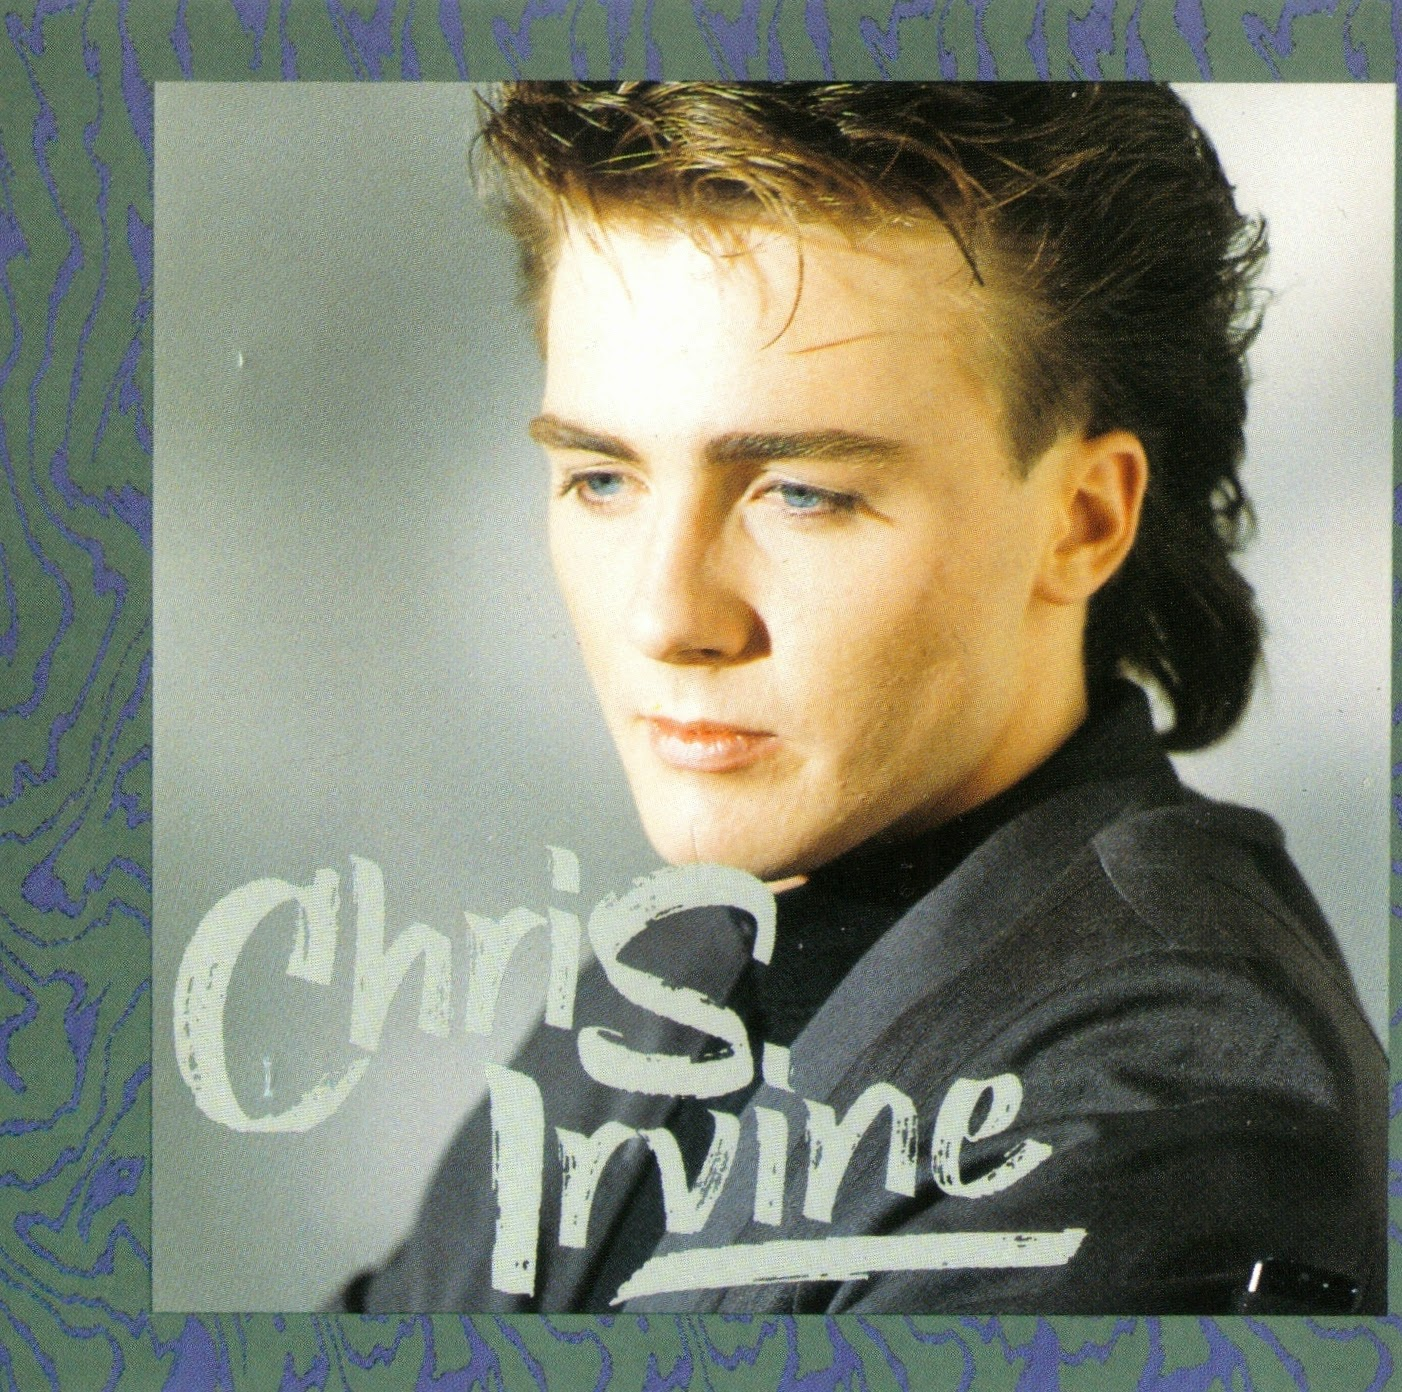 Chris Irvine st 1992 aor melodic rock westcoast